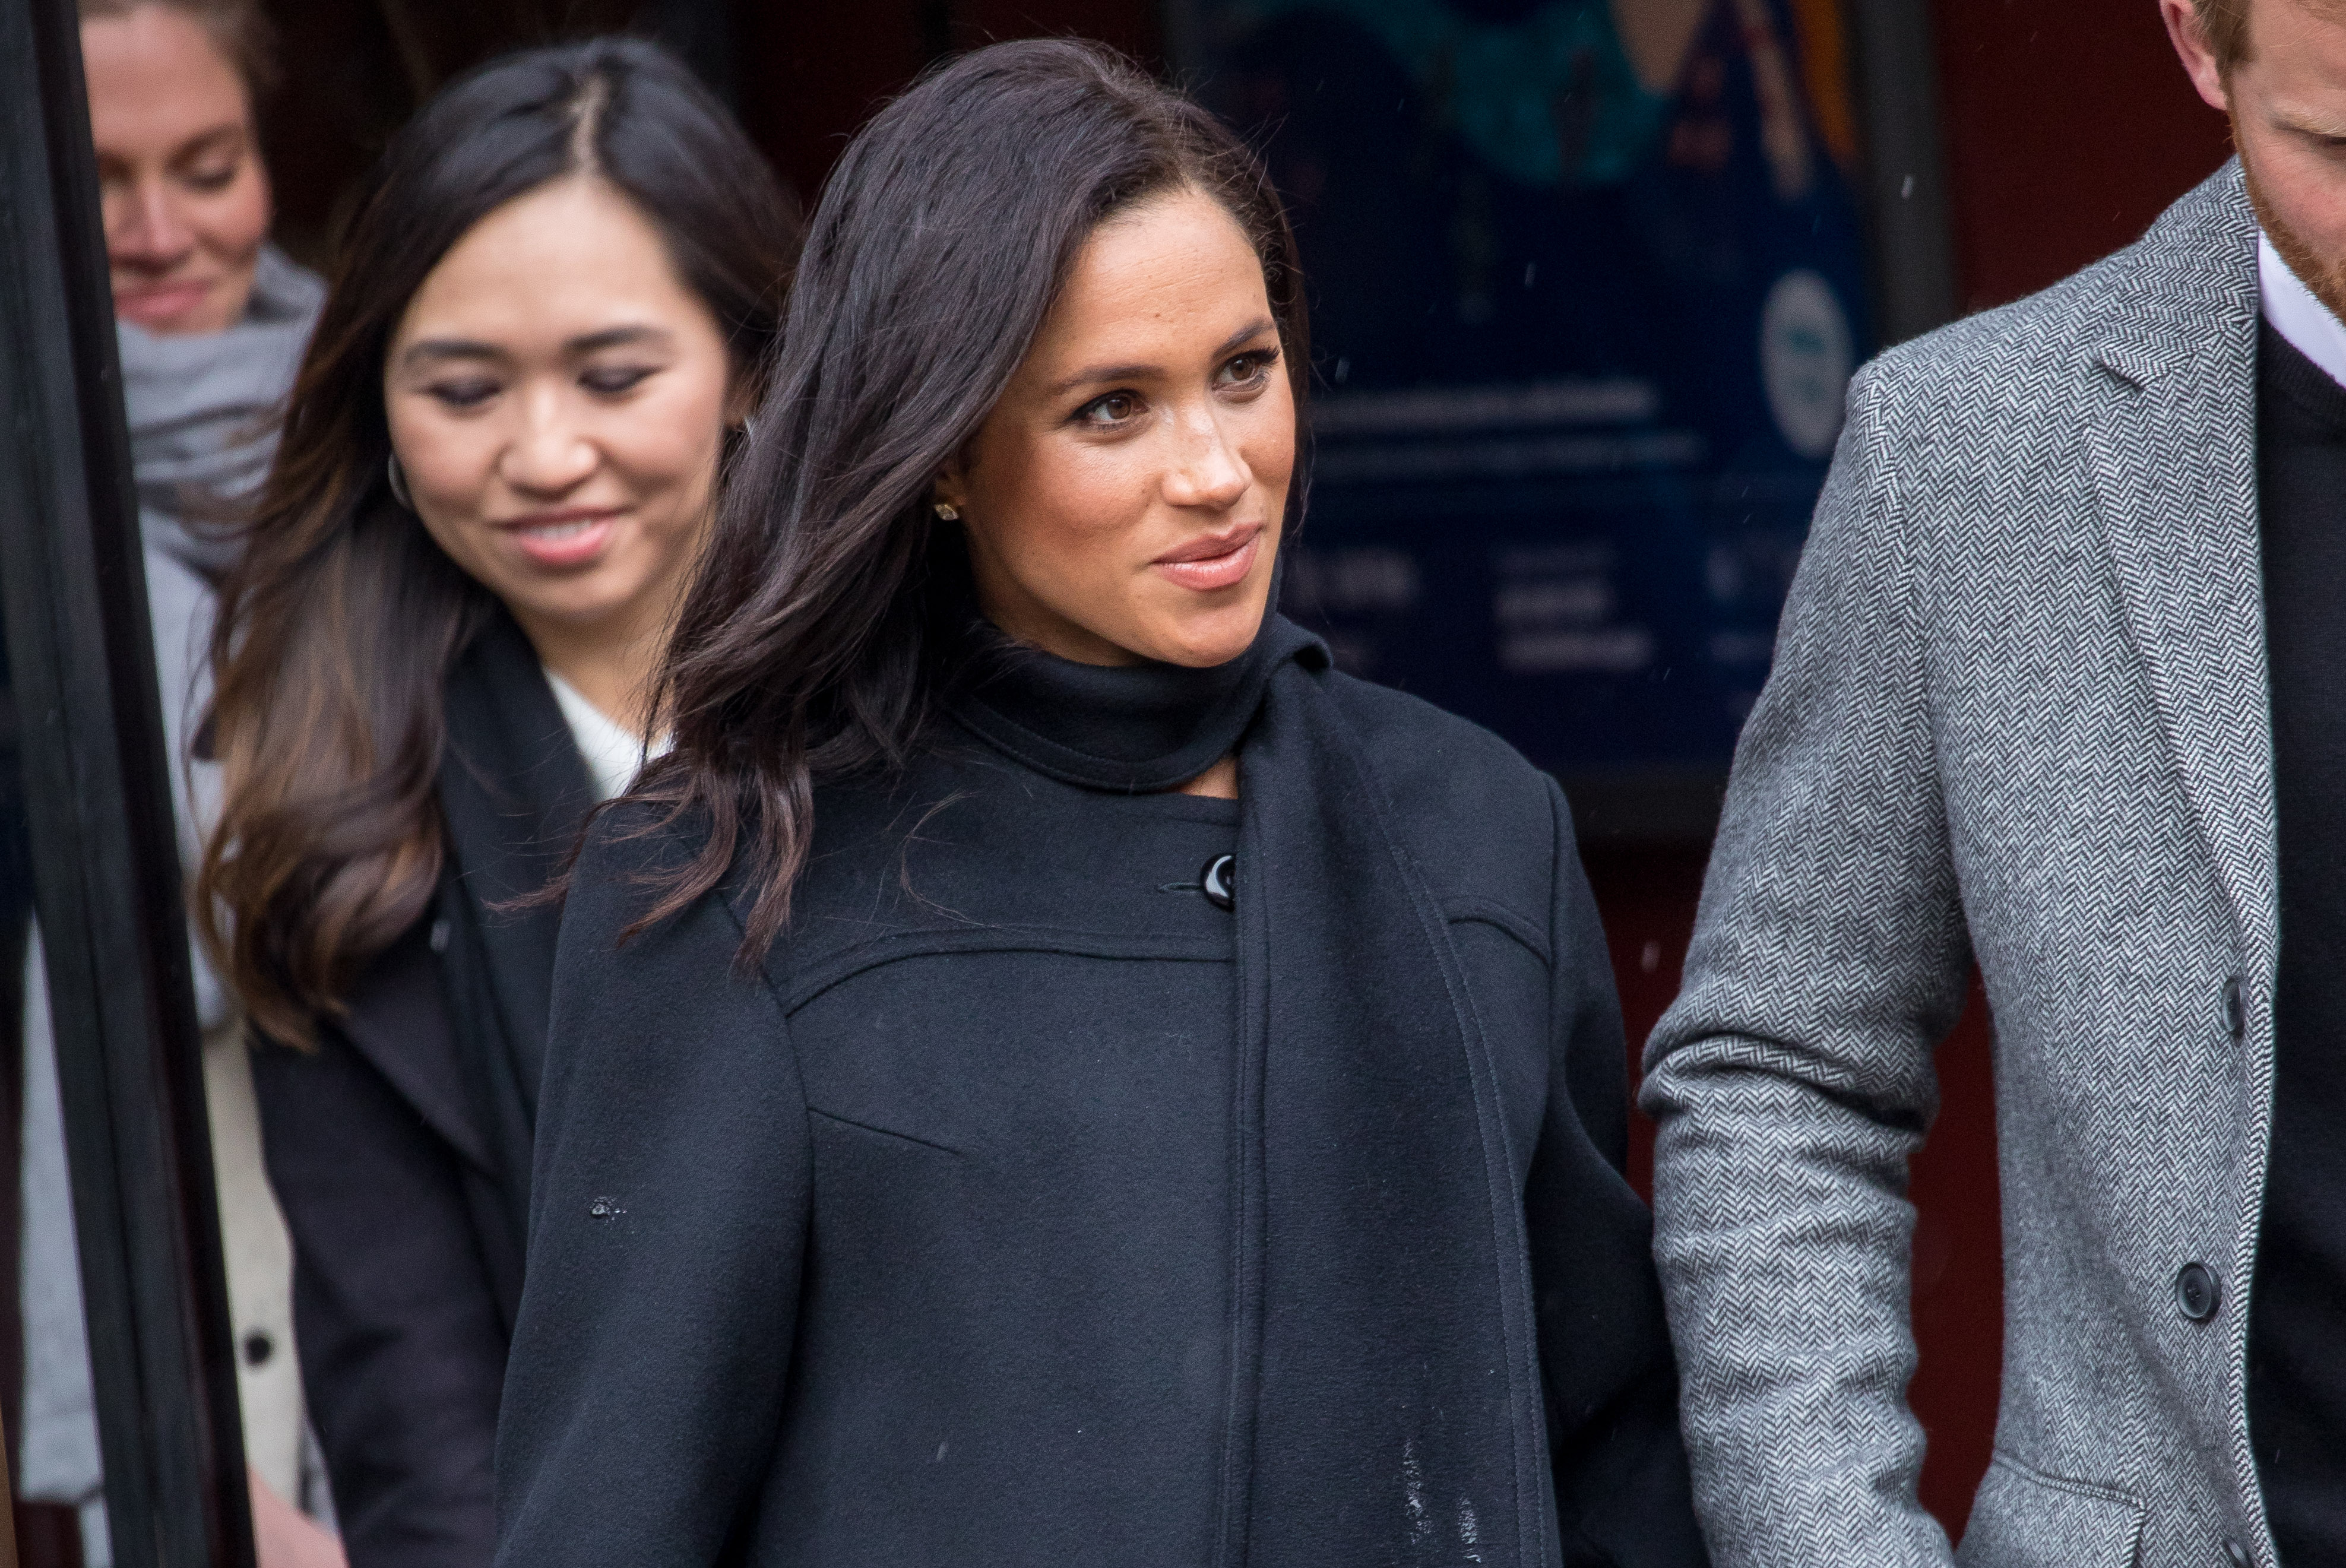 Meghan Markle 'will celebrate her baby shower in New York'